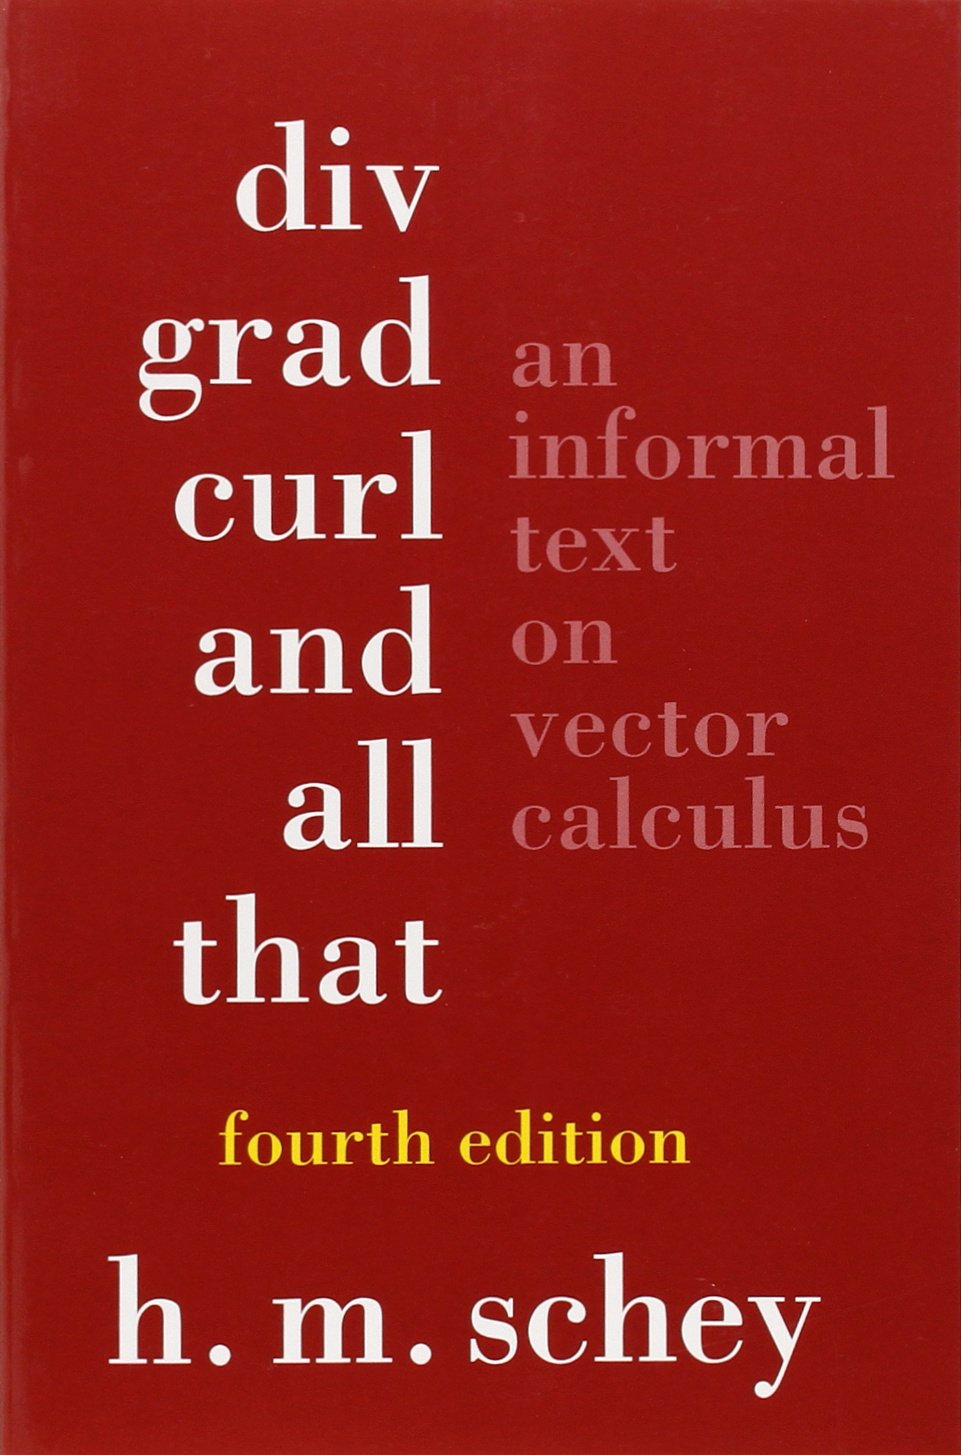 DIV Grad Curl And All That  An Informal Text On Vector Calculus